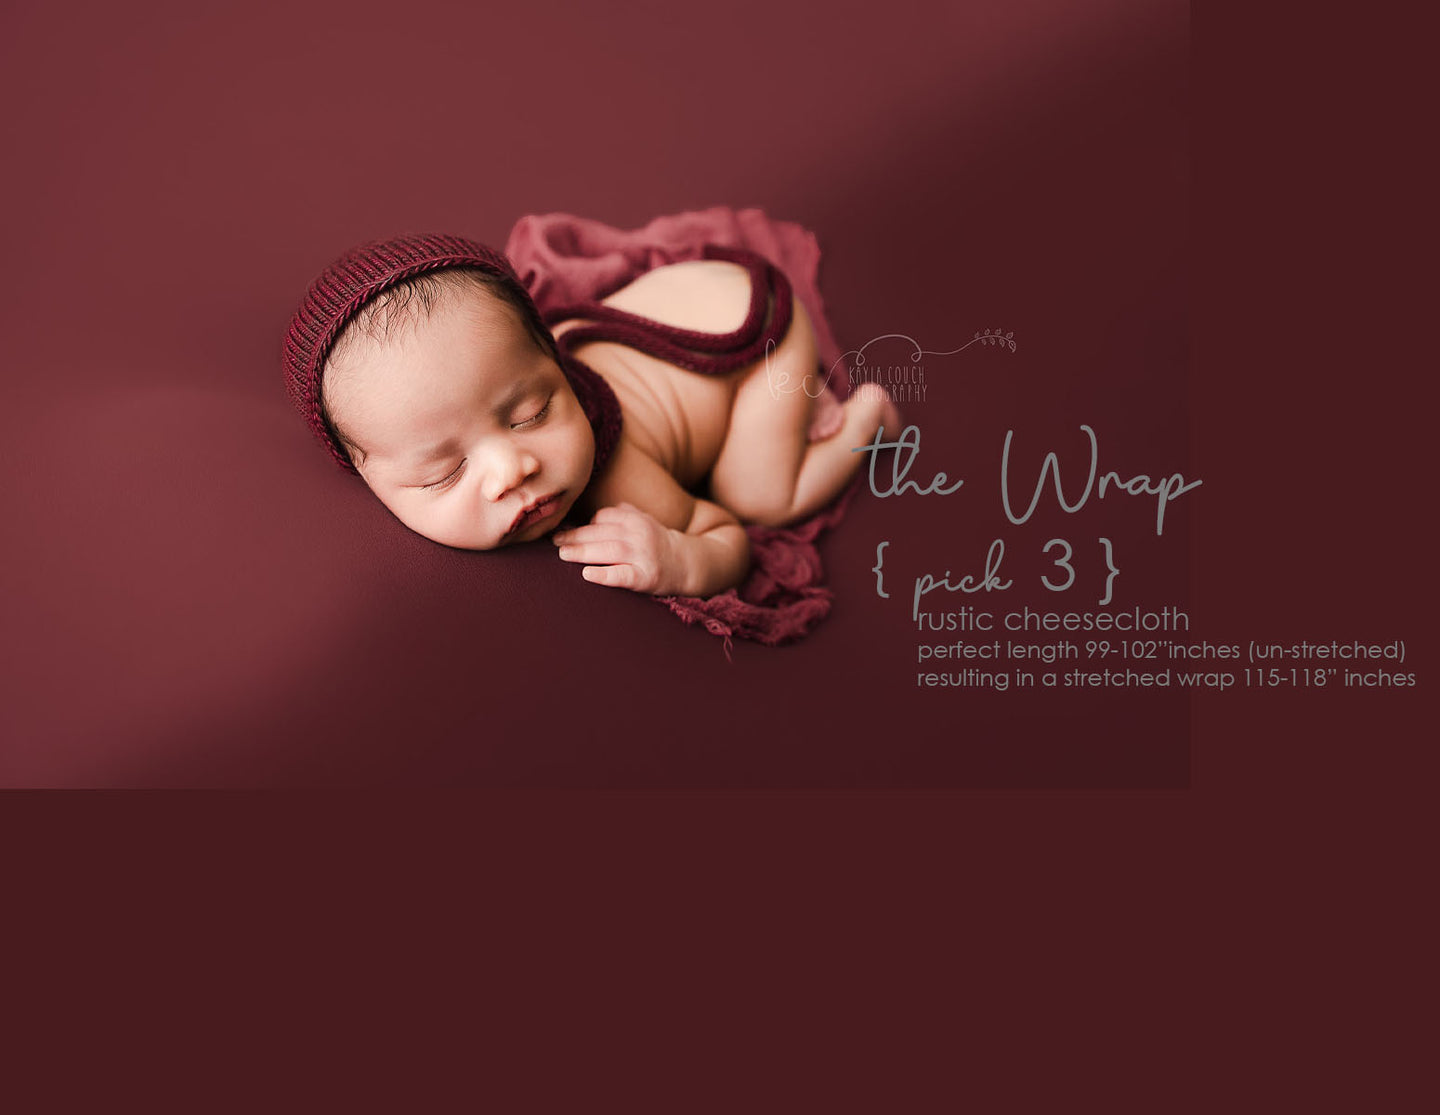 the WRAP - Rustic Cheesecloth Wrap - 99-102